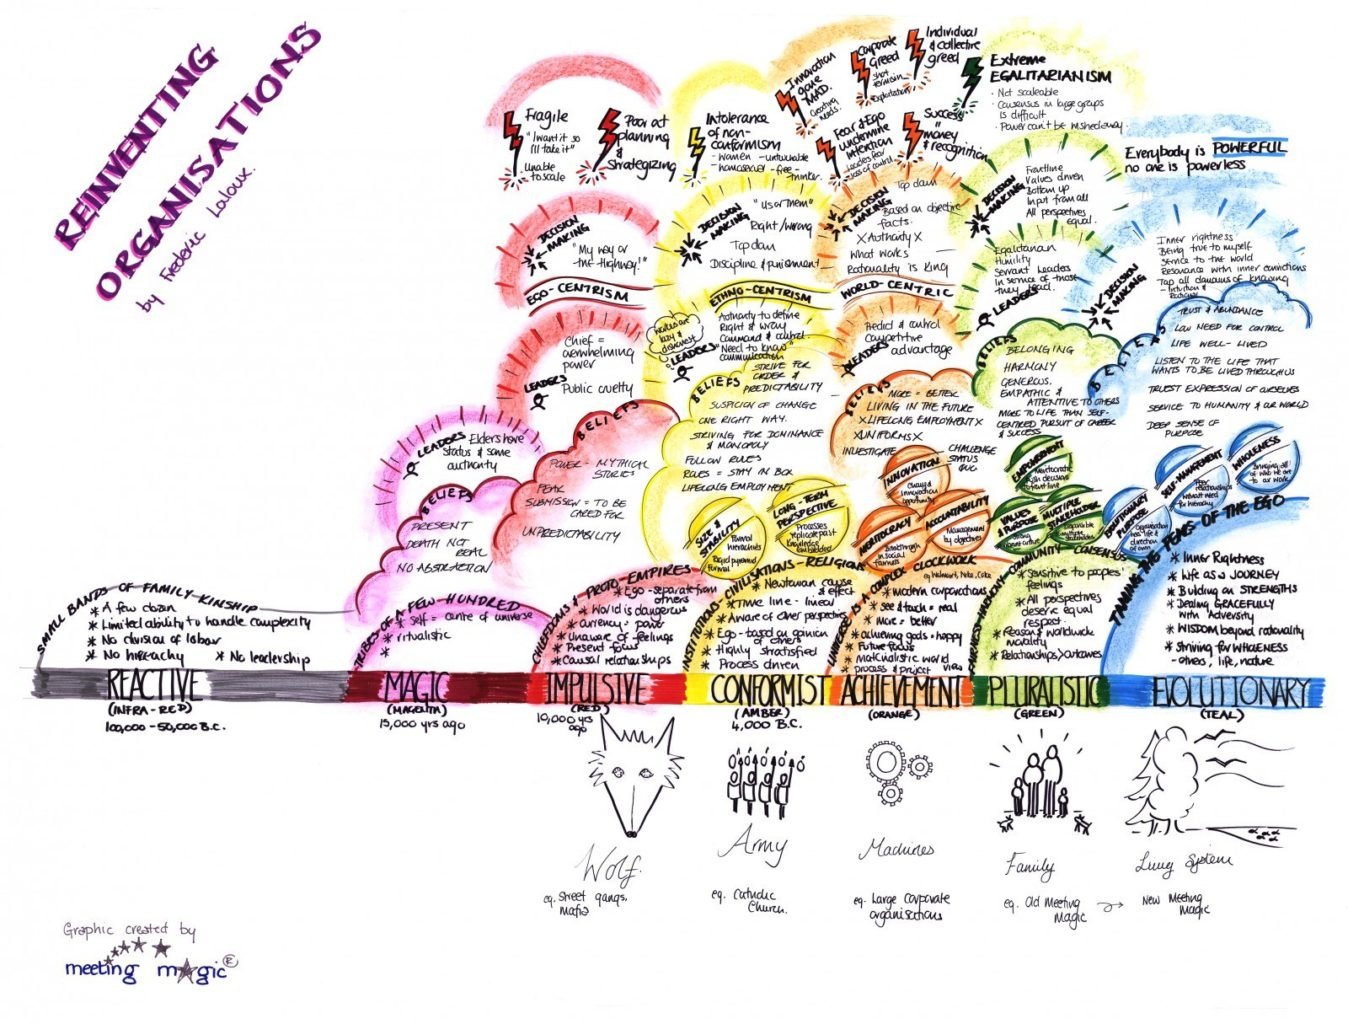 A visual summary of Reinventing Organizations by Frederic Laloux.